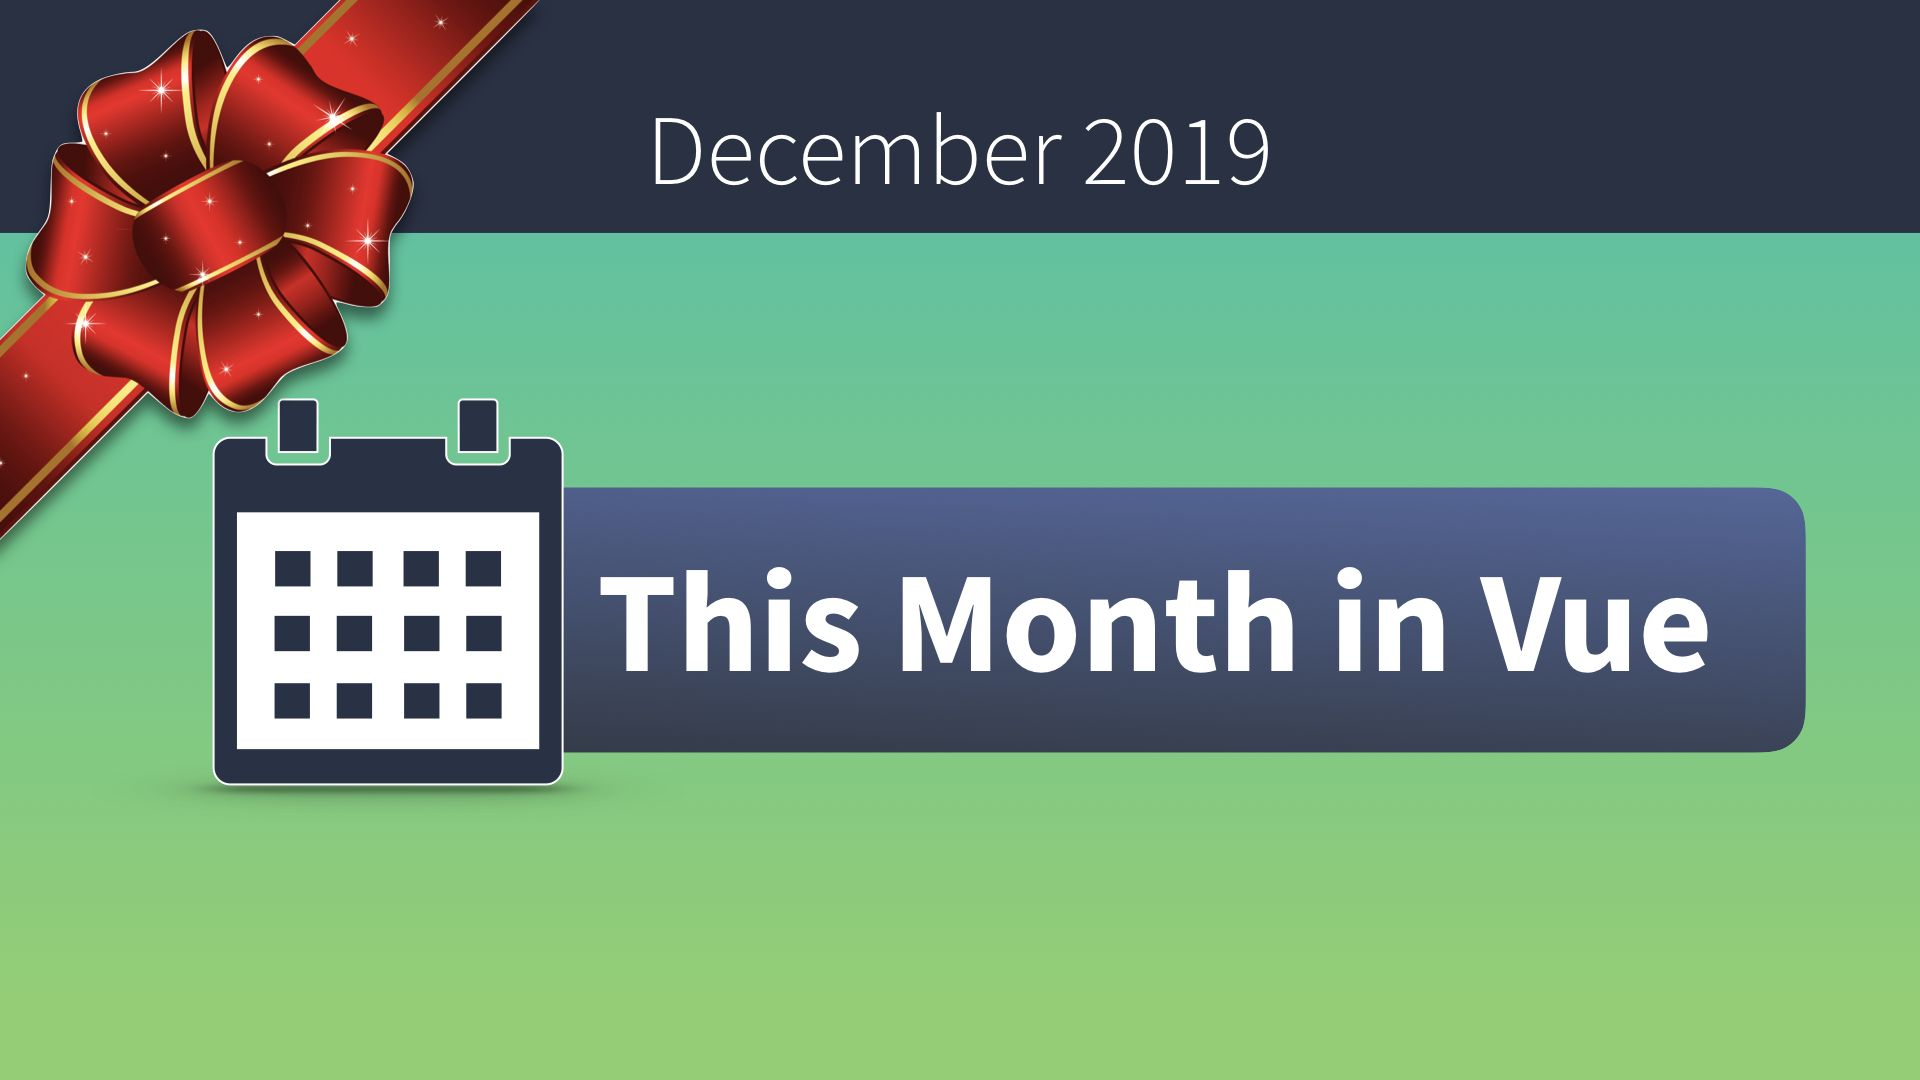 This Month in Vue - December 2019